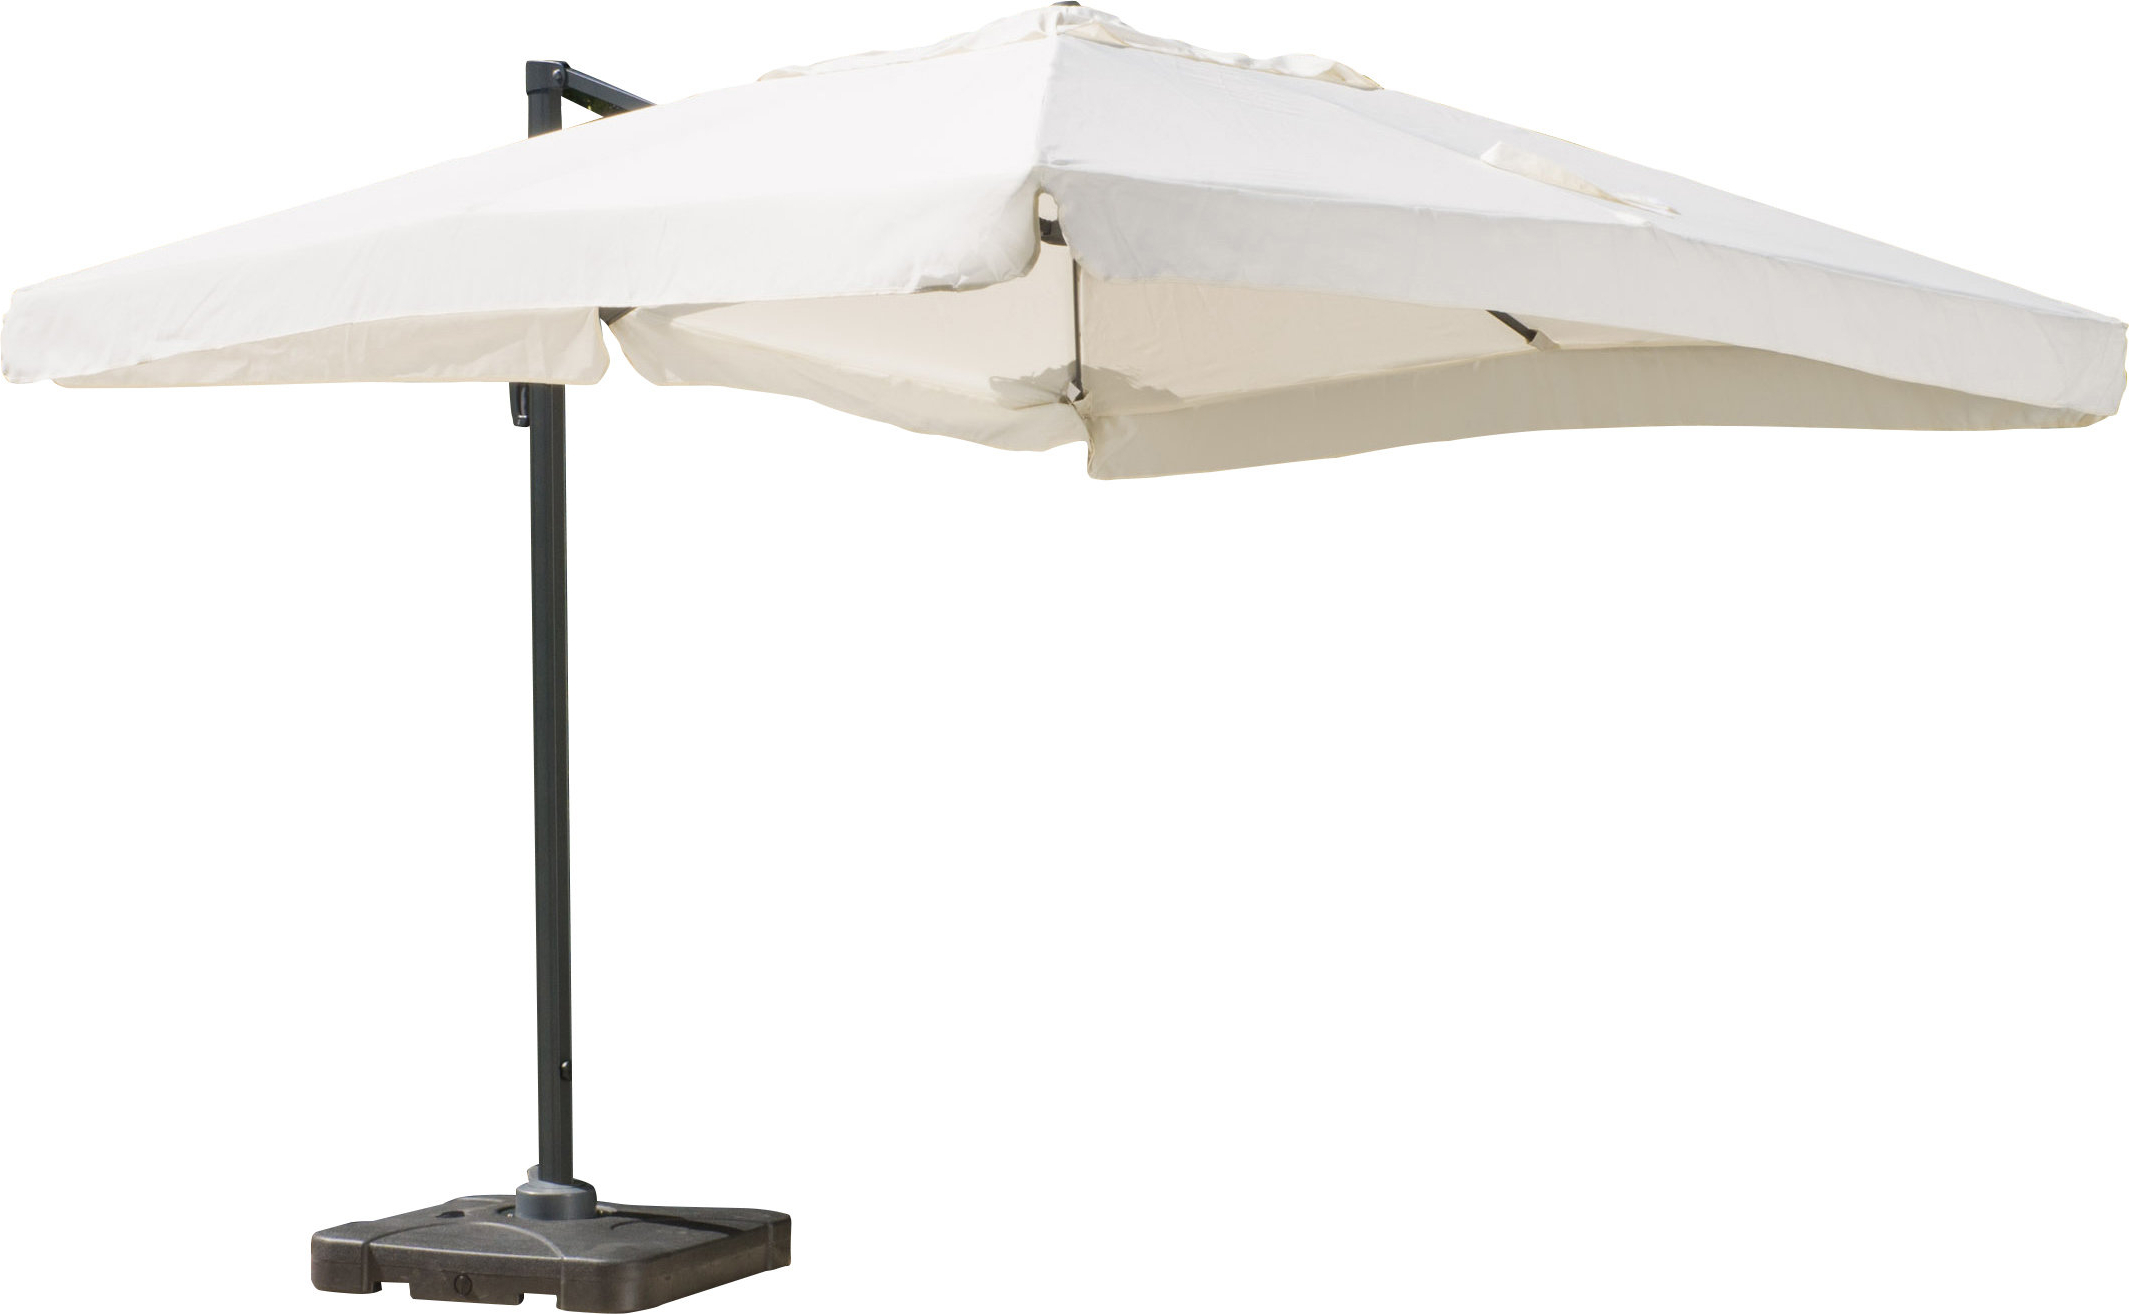 Bondi 9.8' Square Cantilever Umbrella With Newest Bondi Square Cantilever Umbrellas (Gallery 2 of 20)